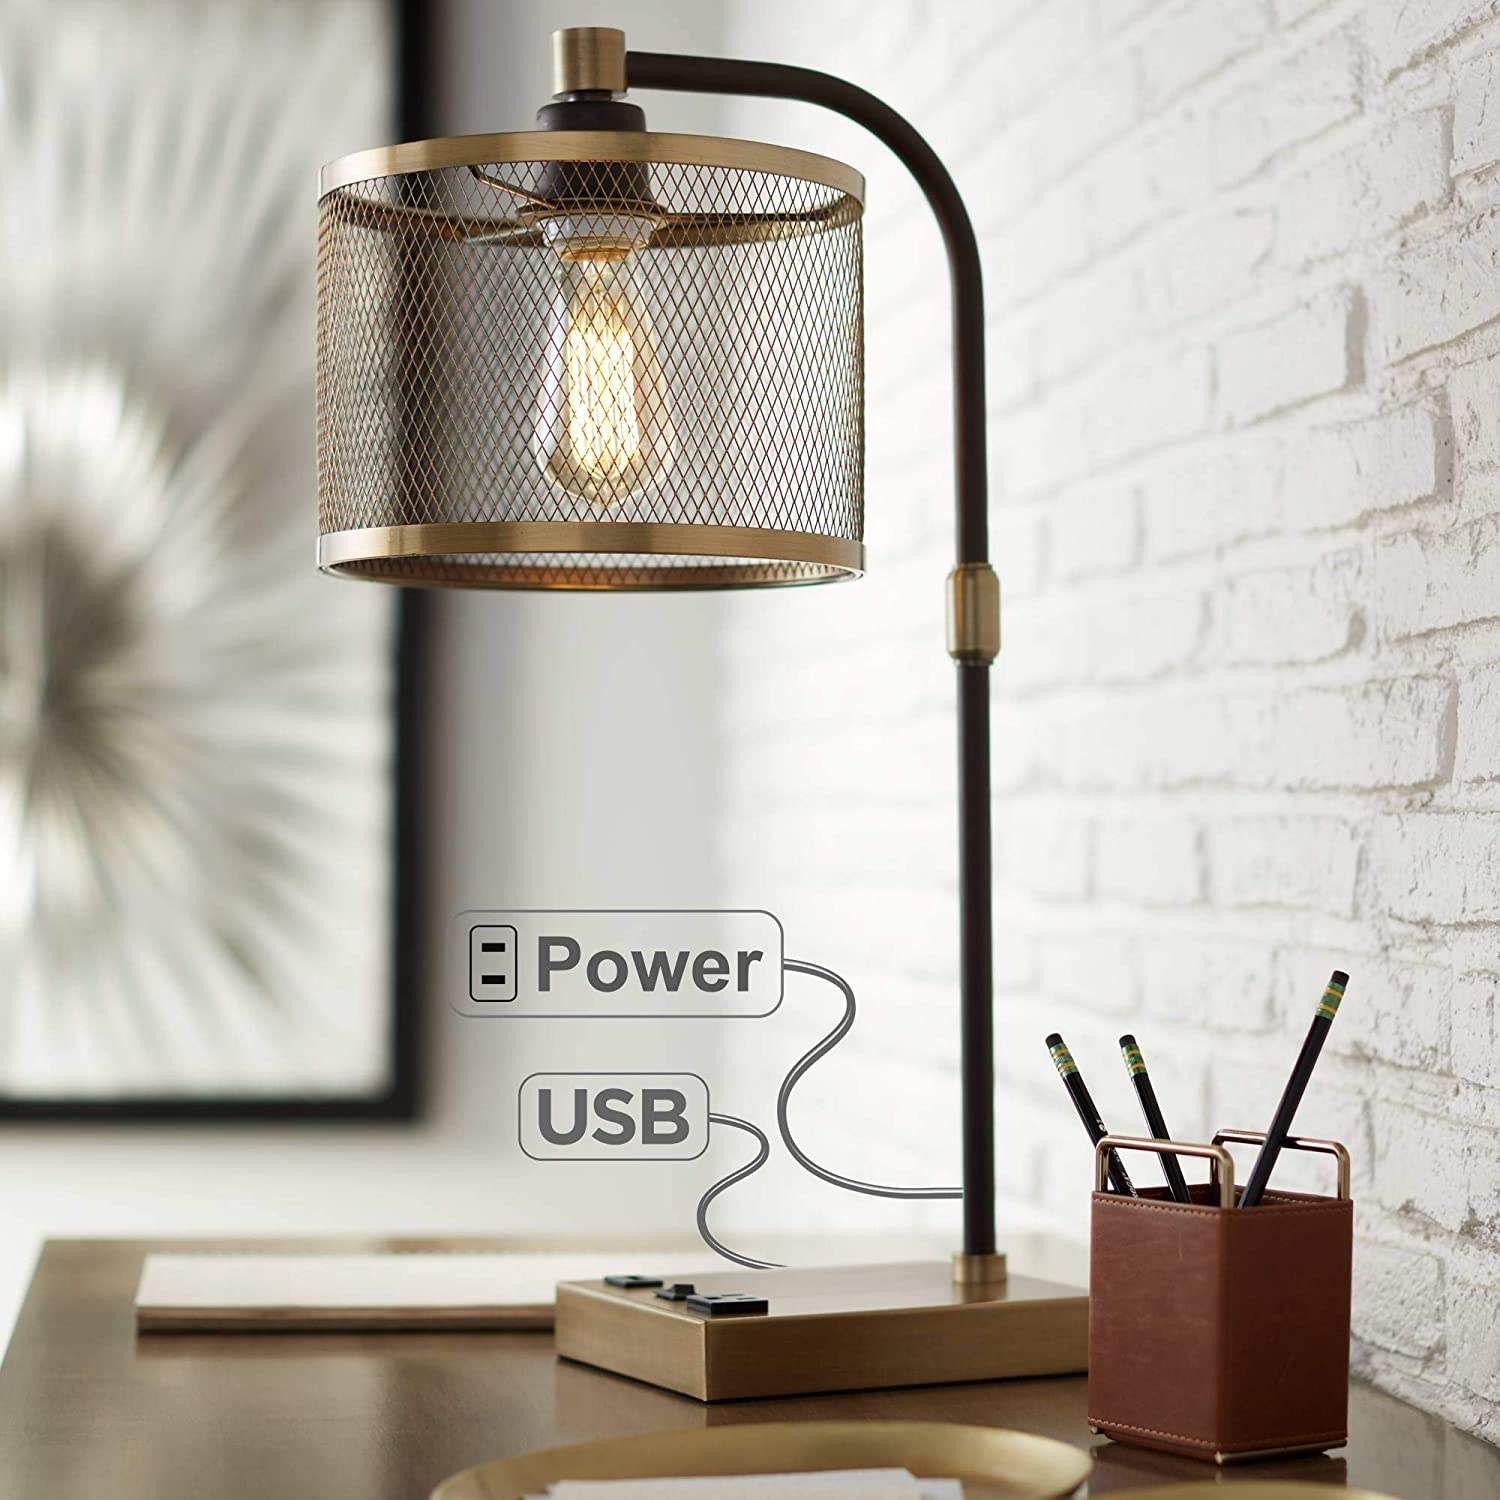 Brody Antique Brass Desk Lamp with USB and Outlet